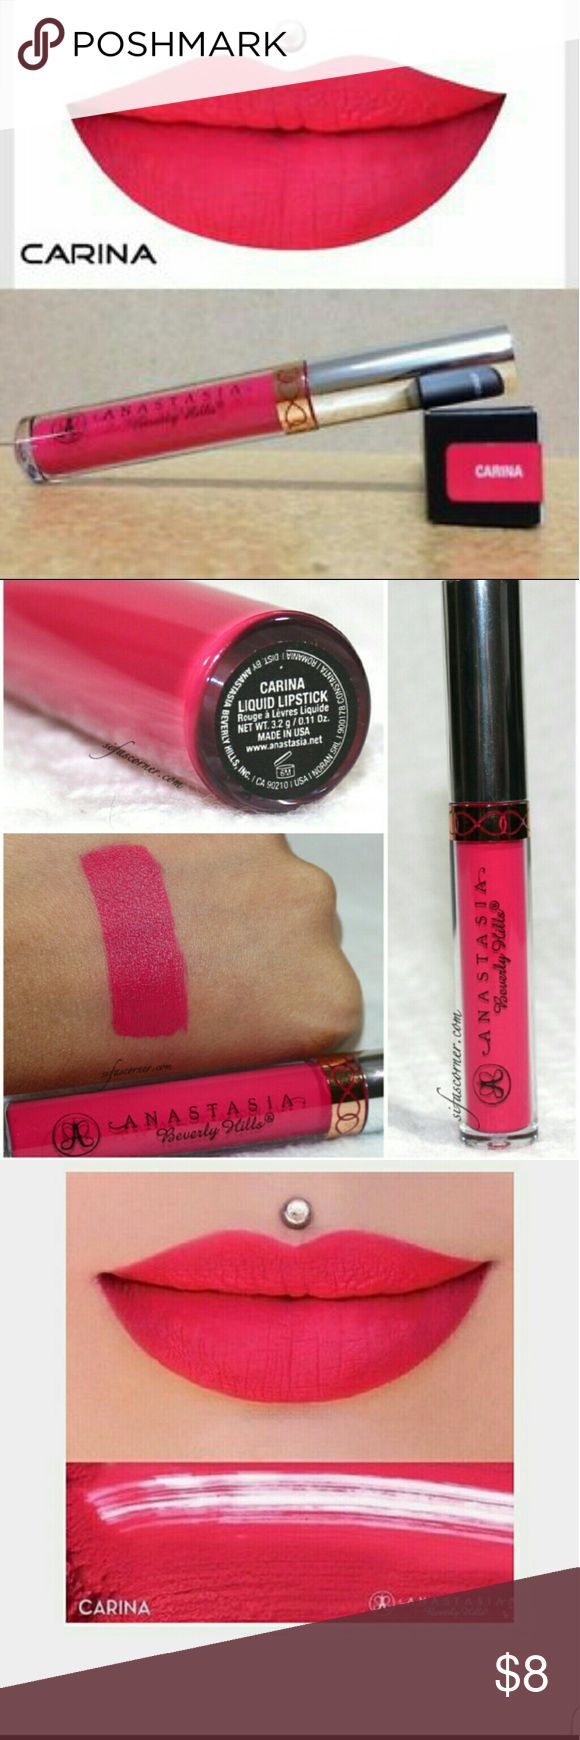 1000+ Ideas About Abh Liquid Lipstick On Pinterest